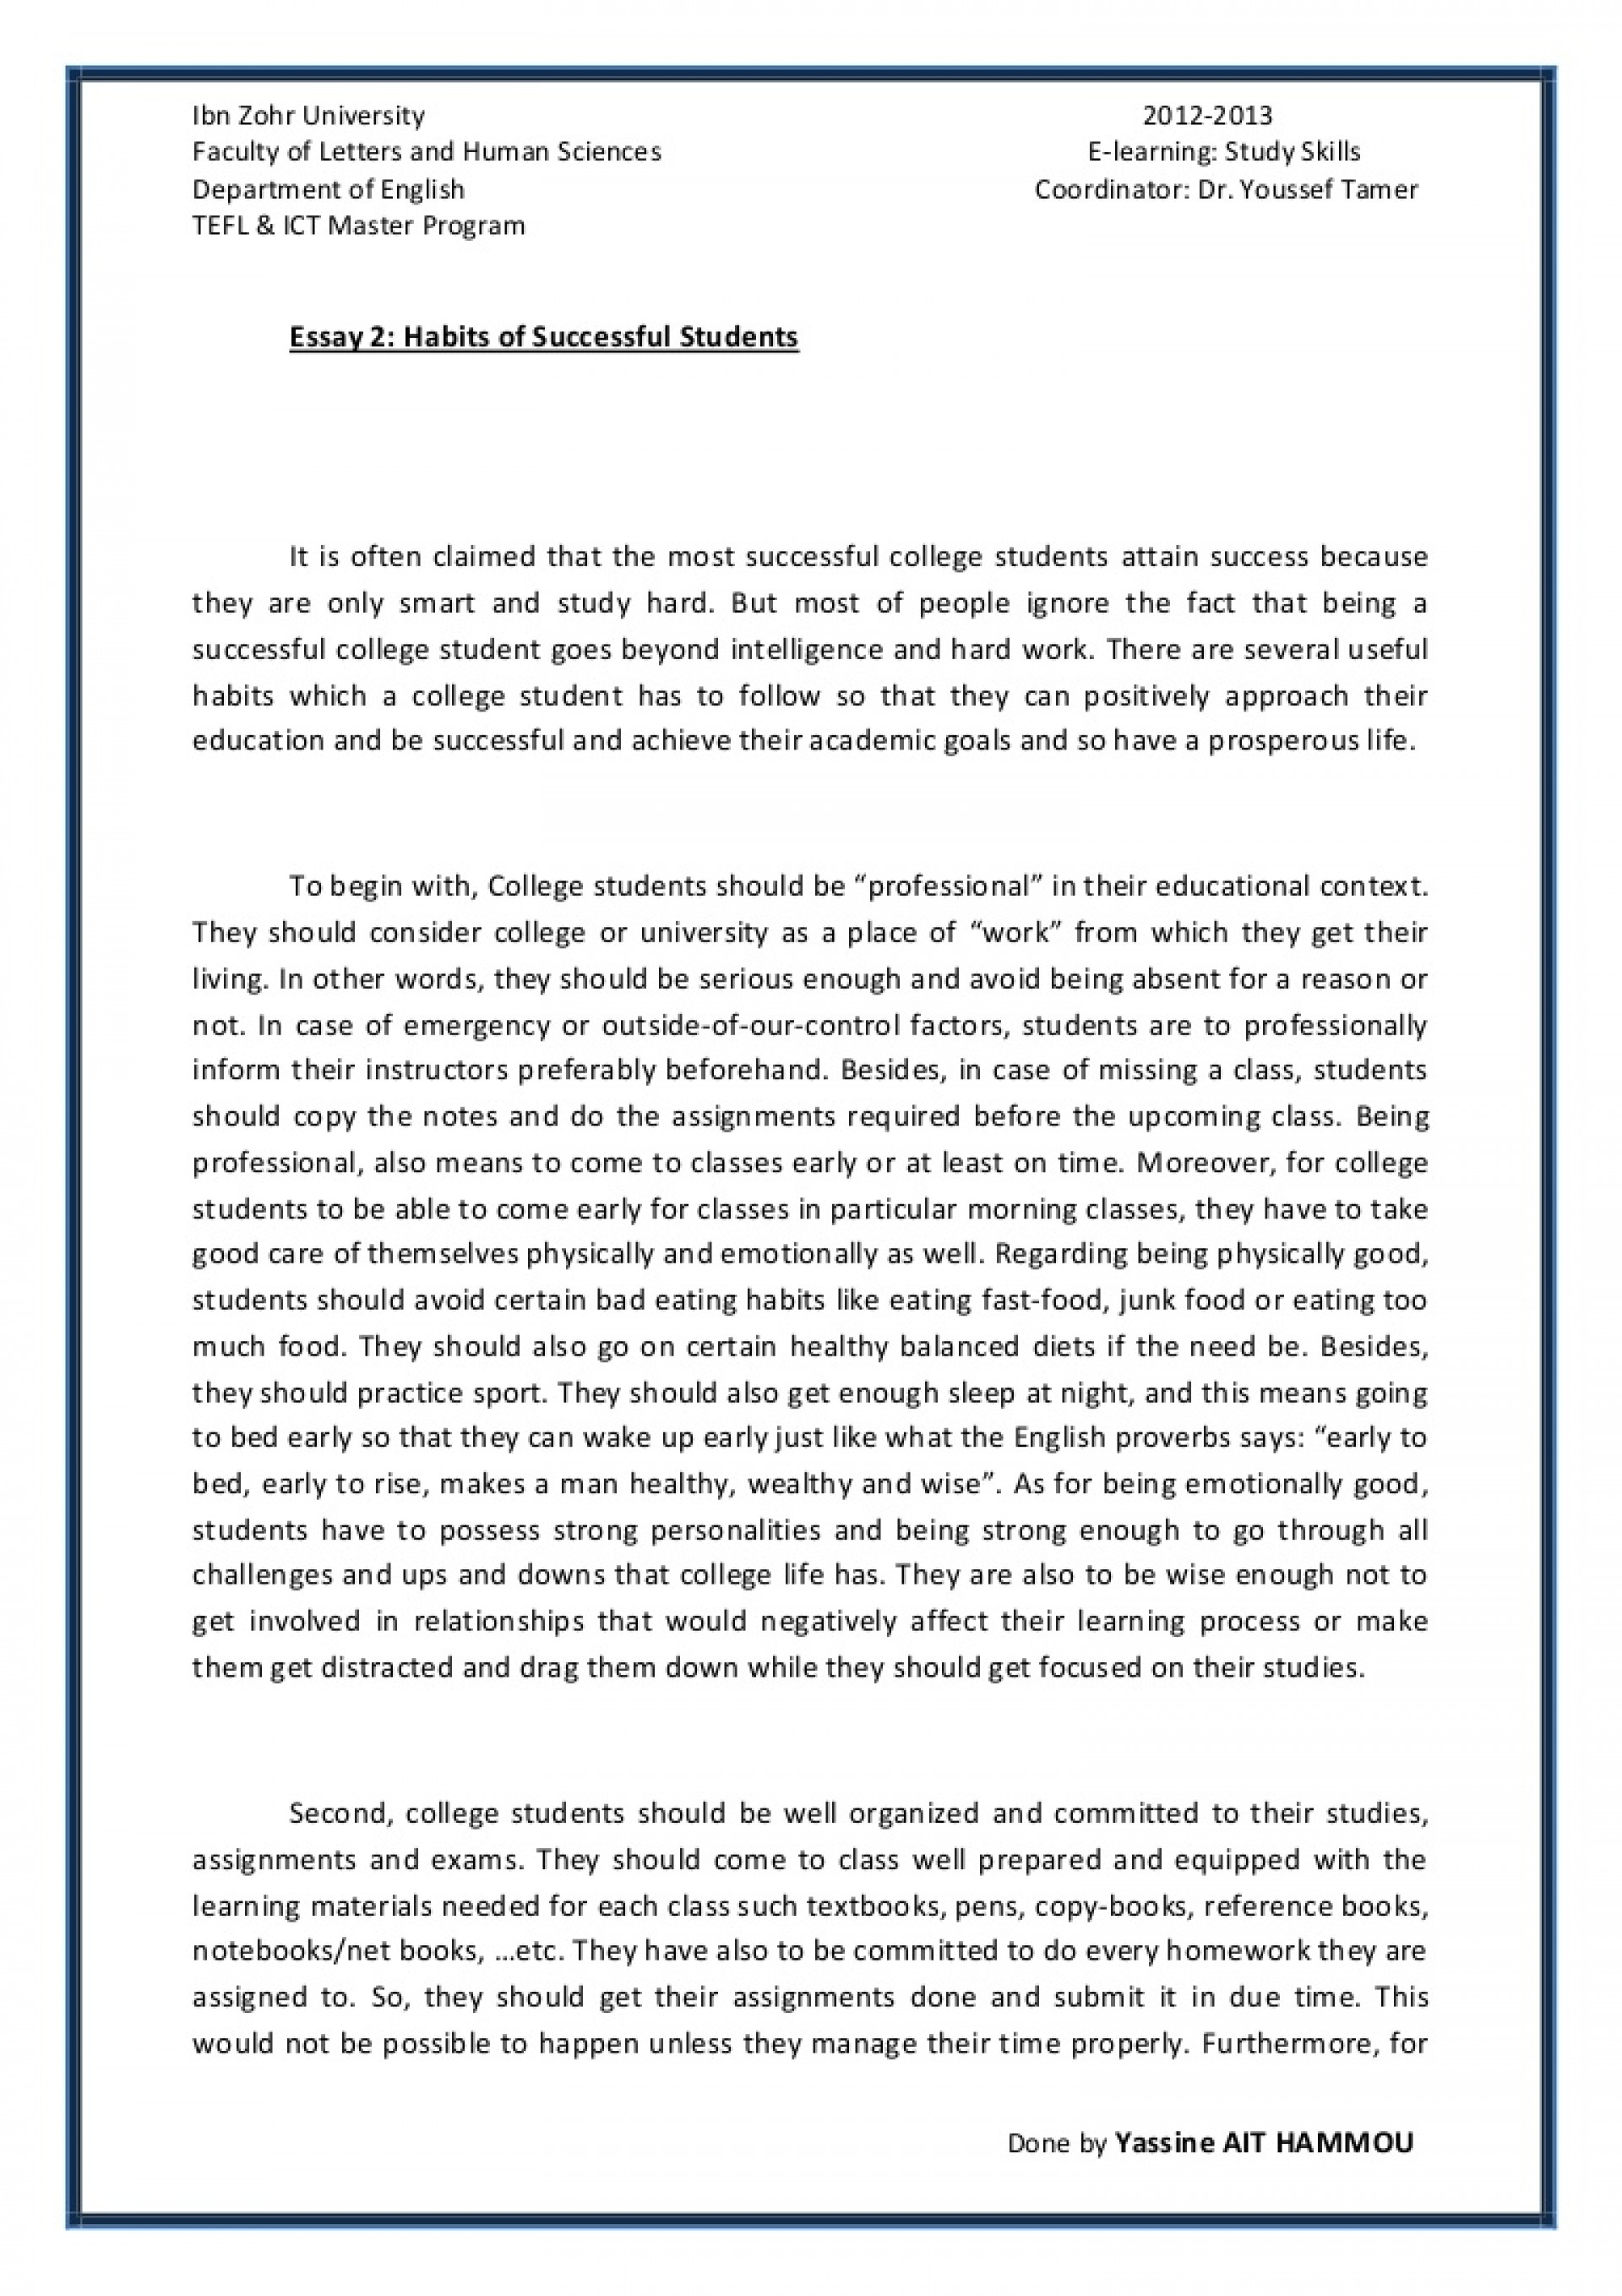 008 How Long Is Short Essay Essay2 Succesfulcollegestudentshabitsbyyassineaithammou Phpapp01 Thumbnail Incredible A In High School Response For College Applications 1920